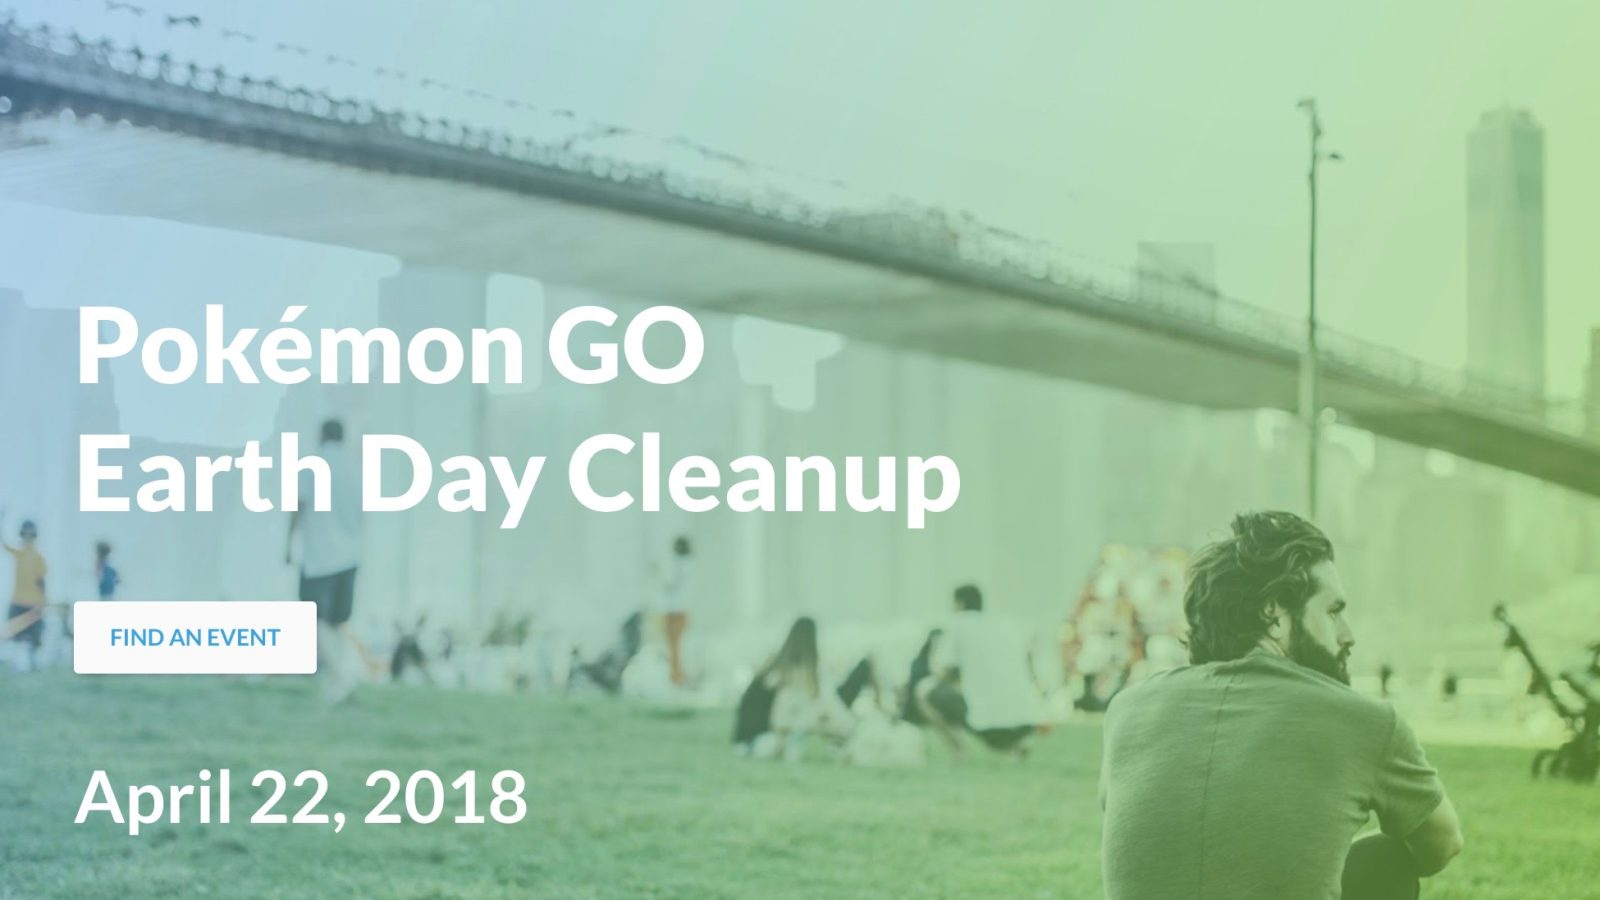 Niantic plans Pokémon GO Earth Day Cleanup events around the